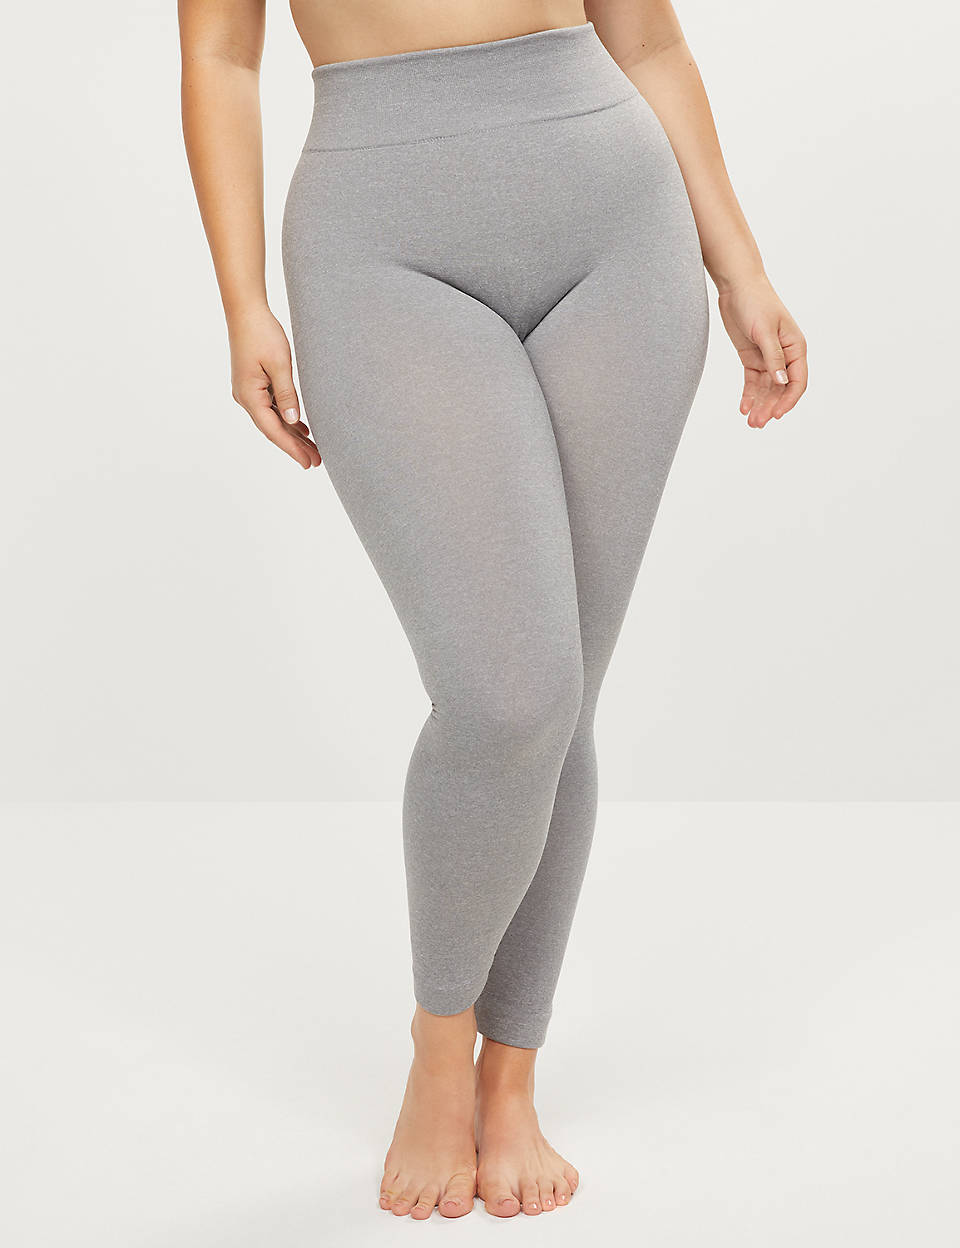 High Waist Fleece Lined Smoothing Leggings by Lane Bryant